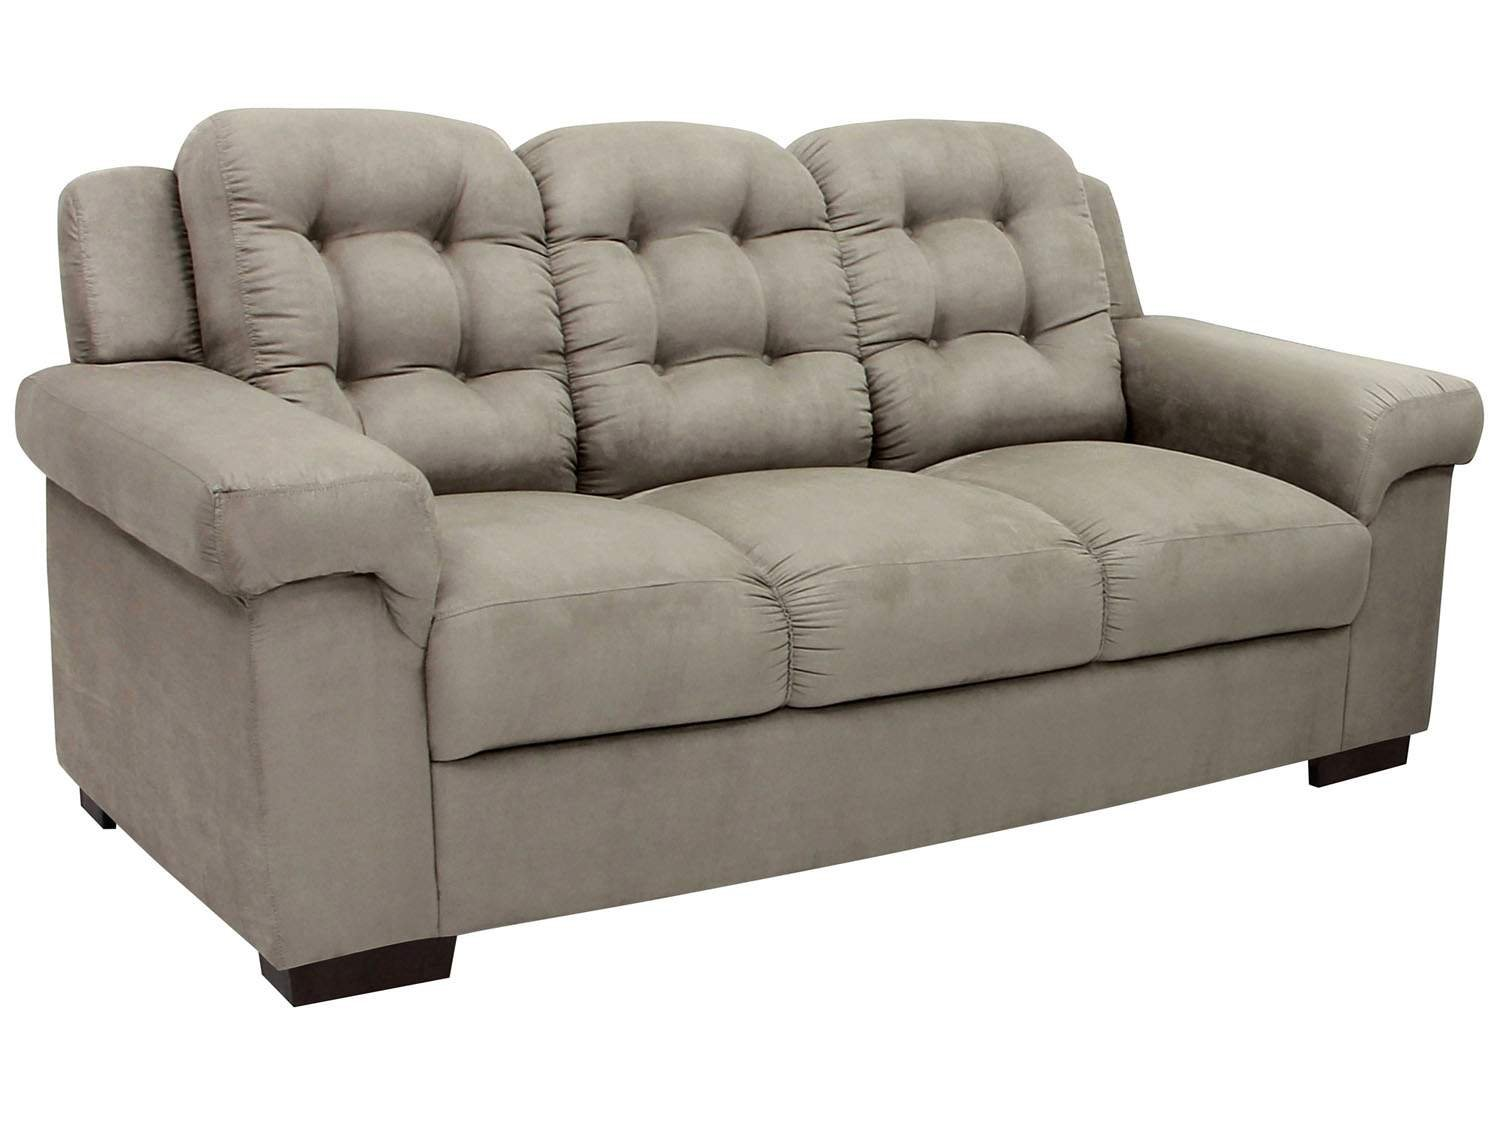 Sof 3 lugares decorare amalfi linoforte sof s 03 for Sofa 03 lugares